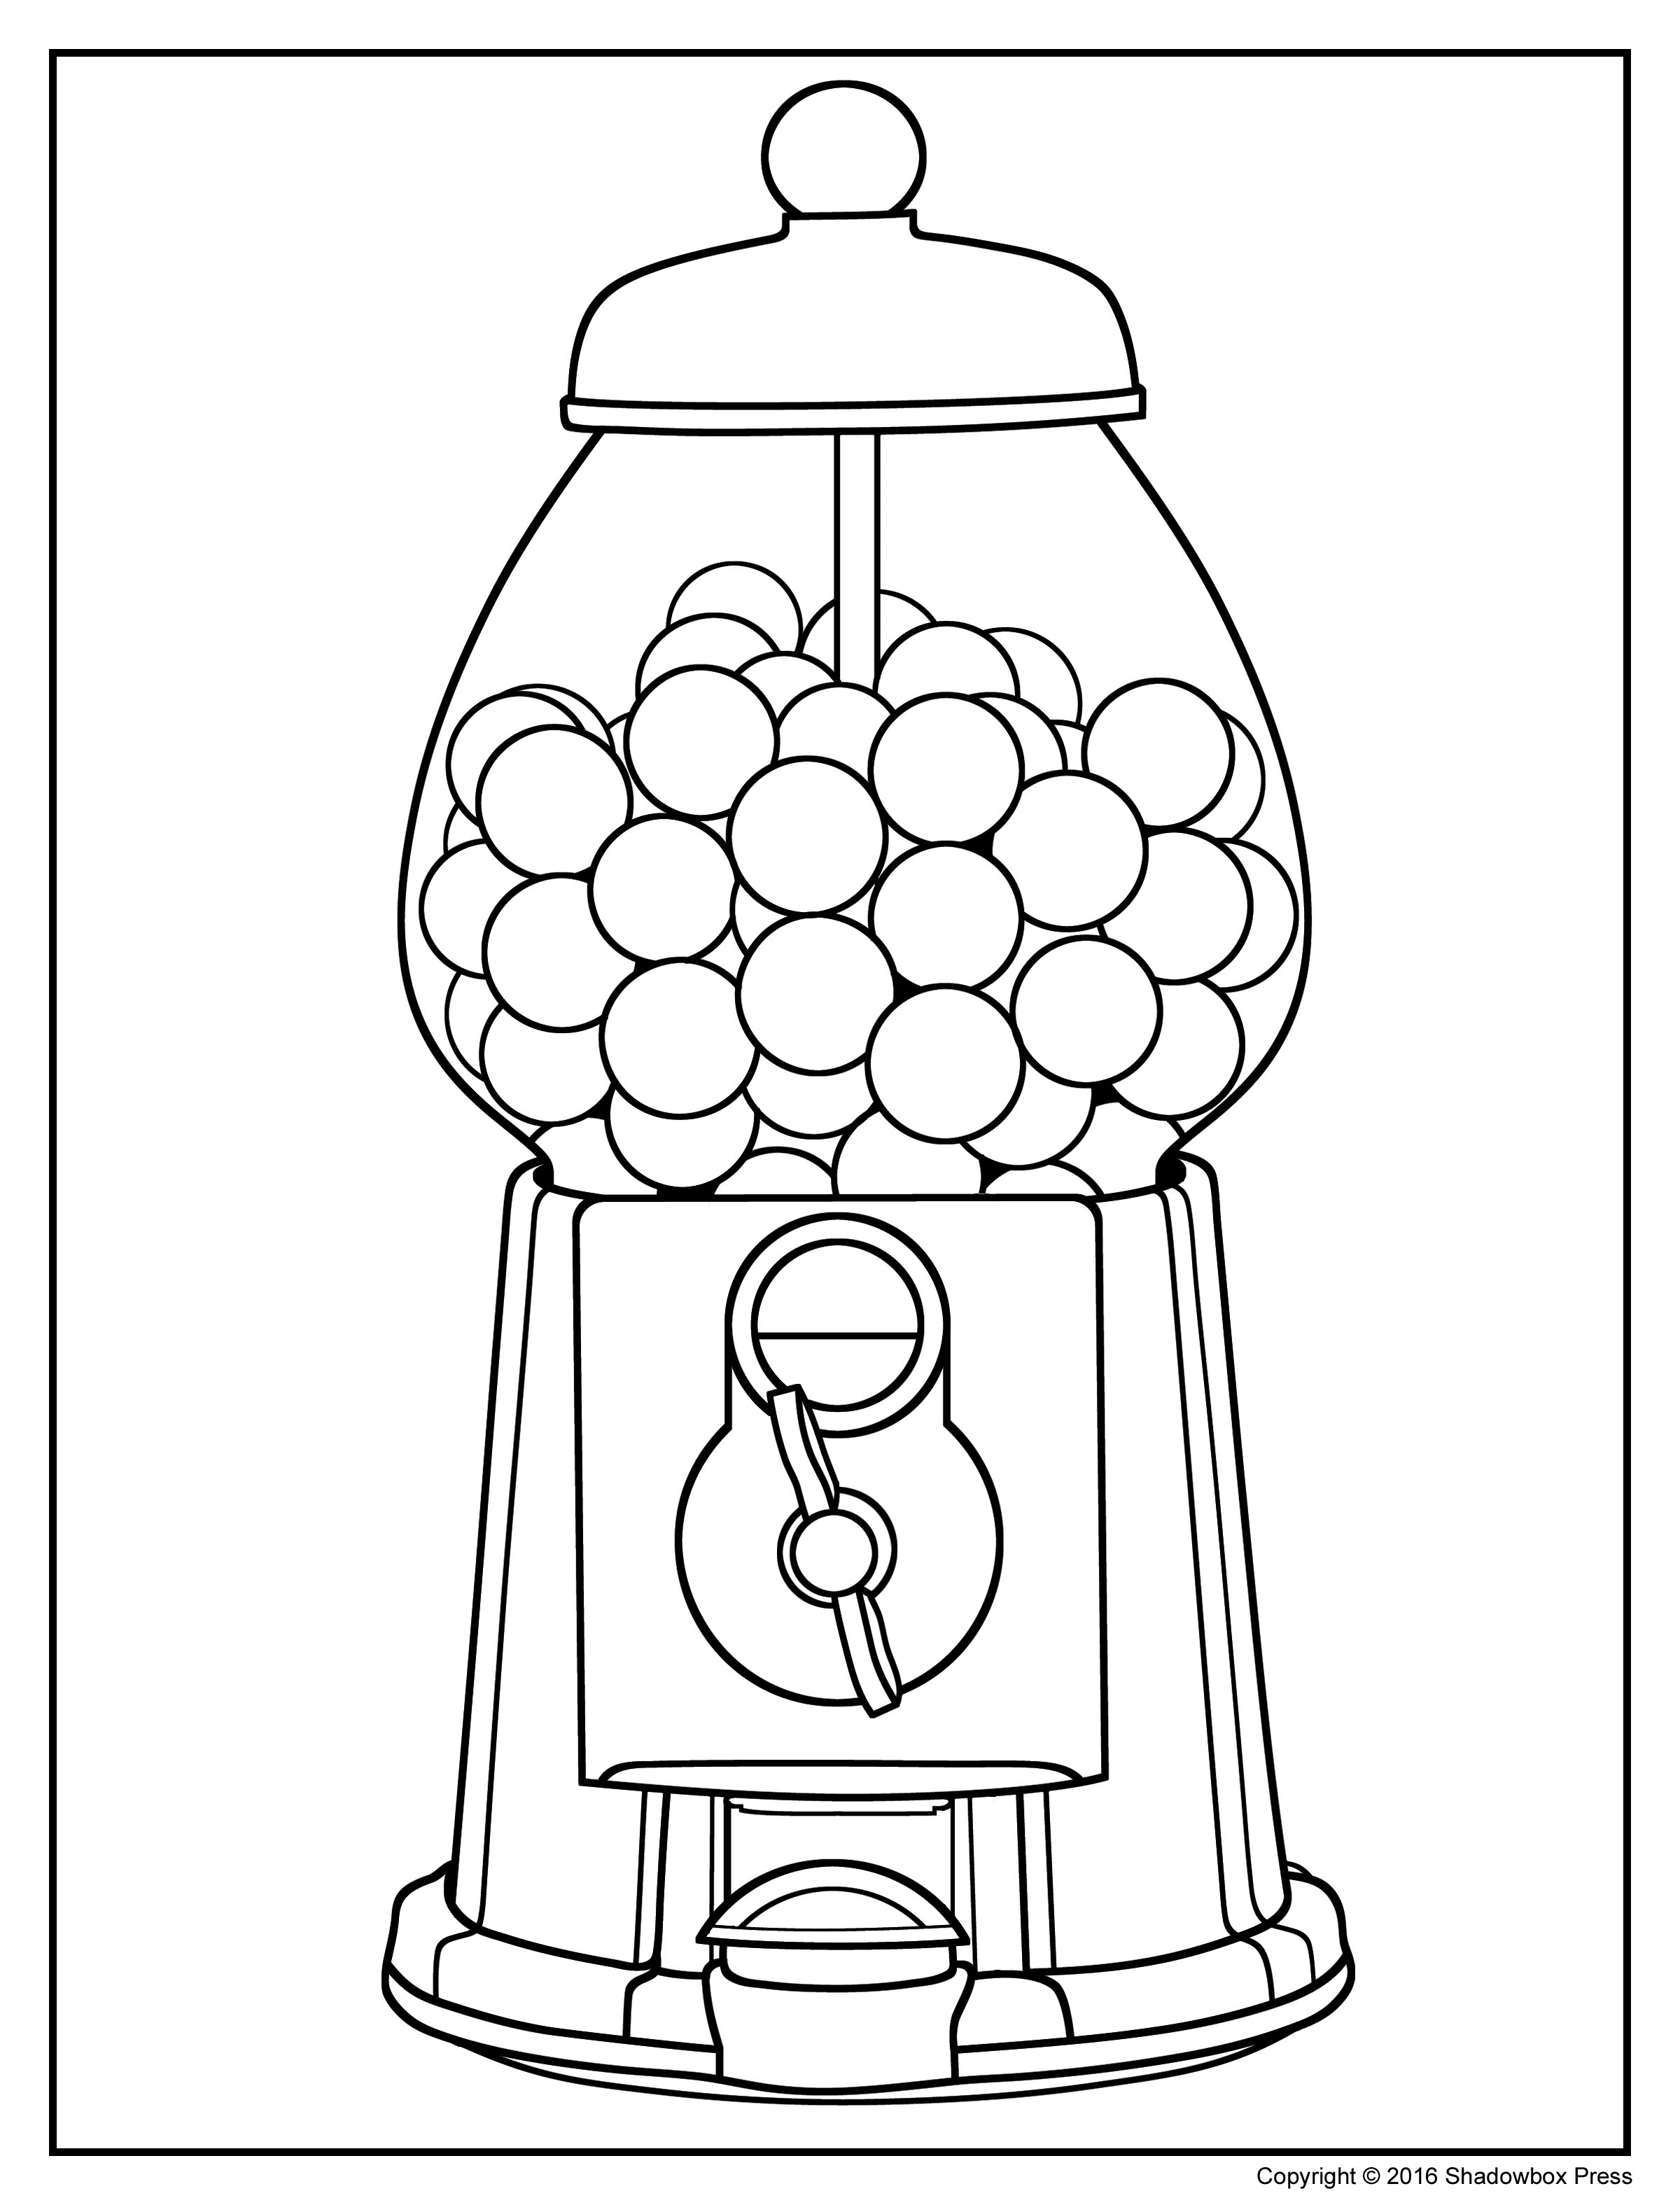 2400x3150 Photos Coloring Pages For Senior Adults,